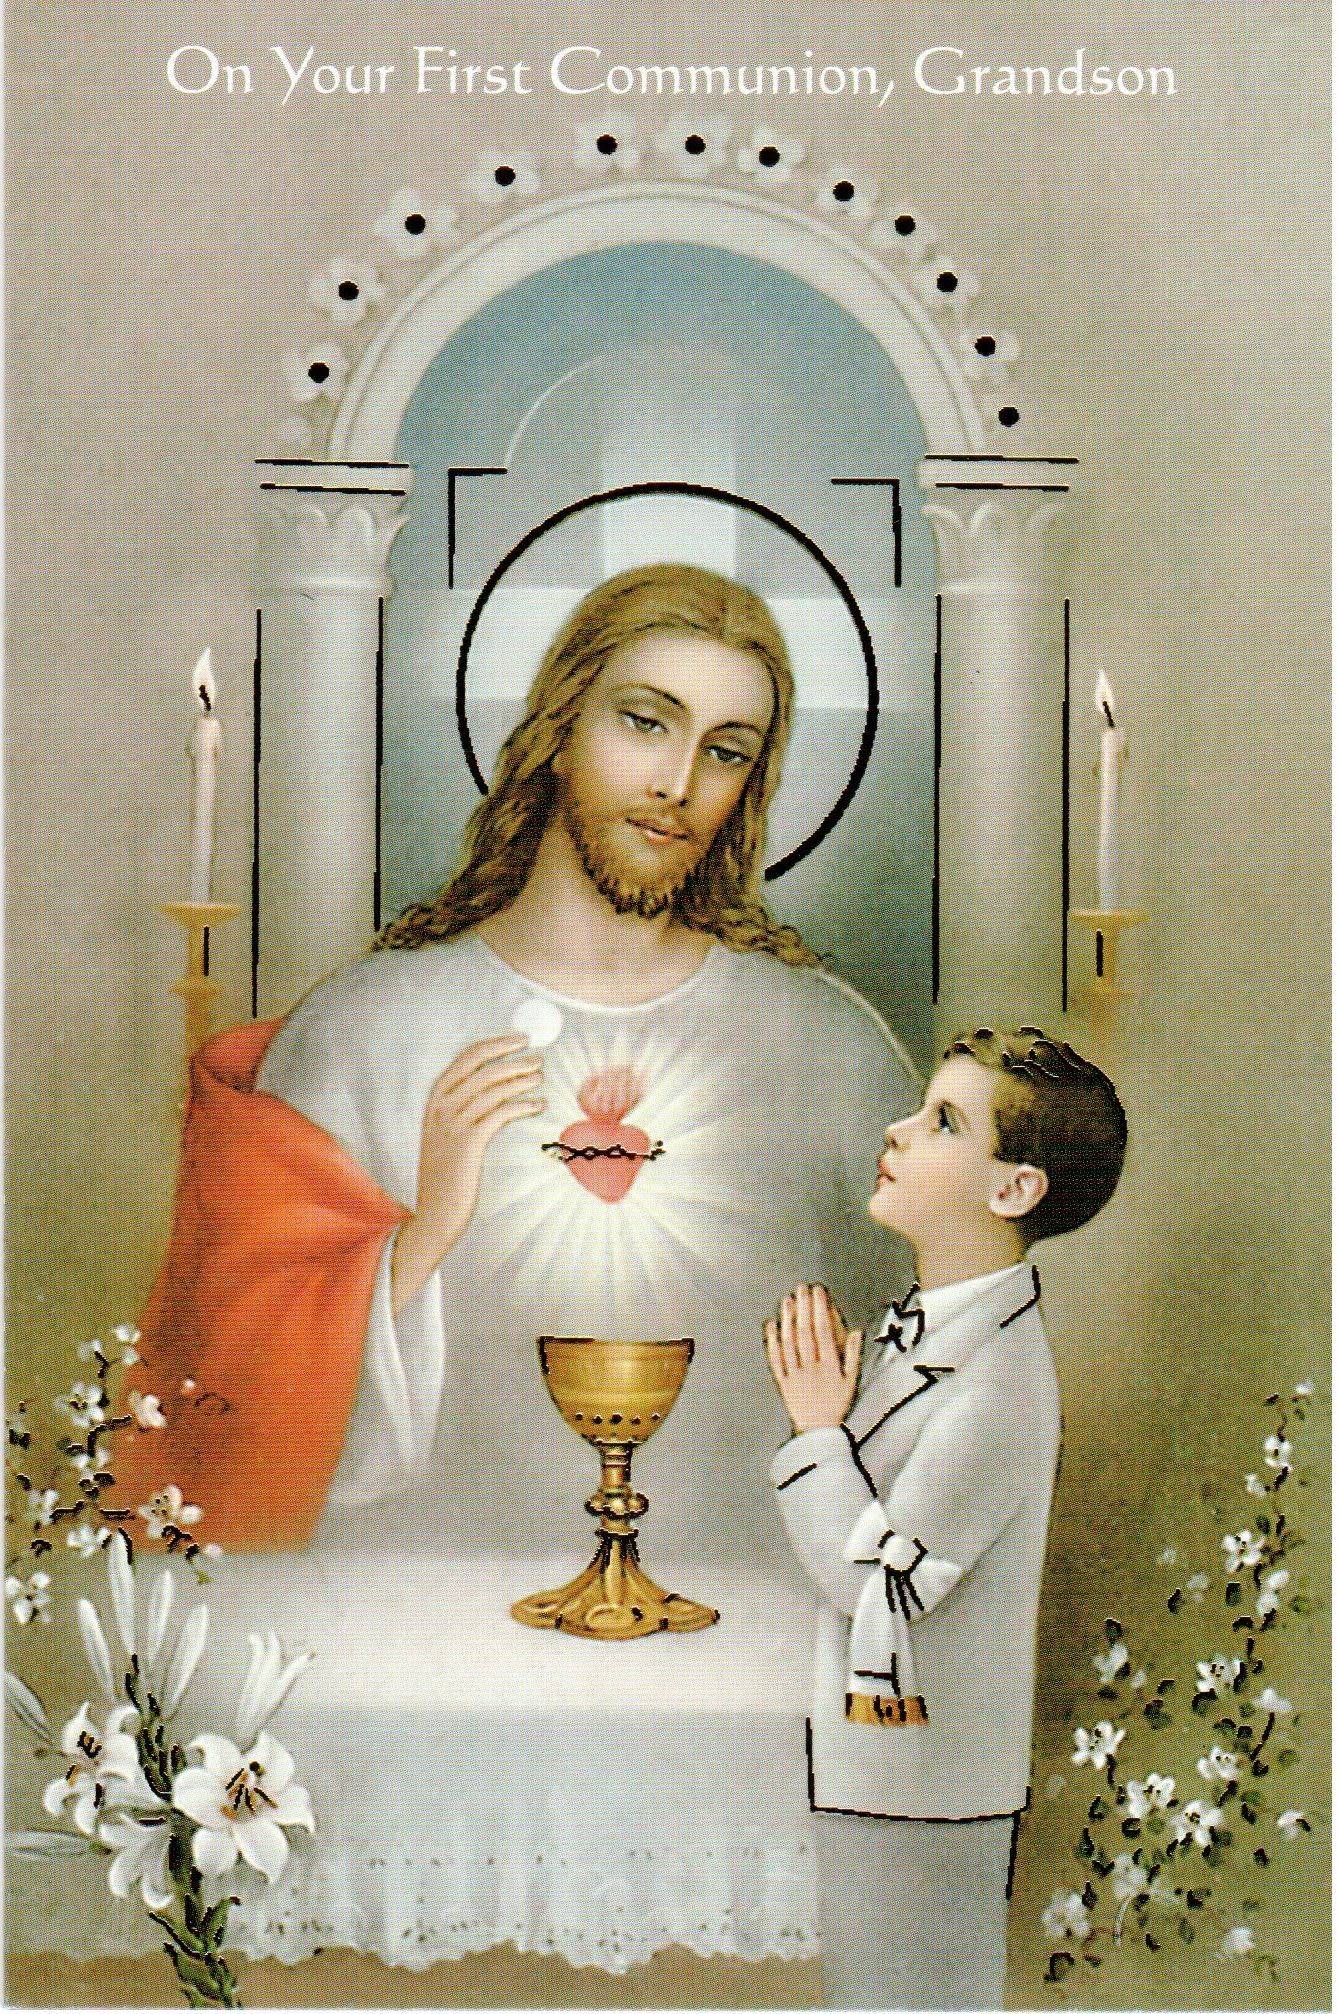 On Your First Communion Grandson